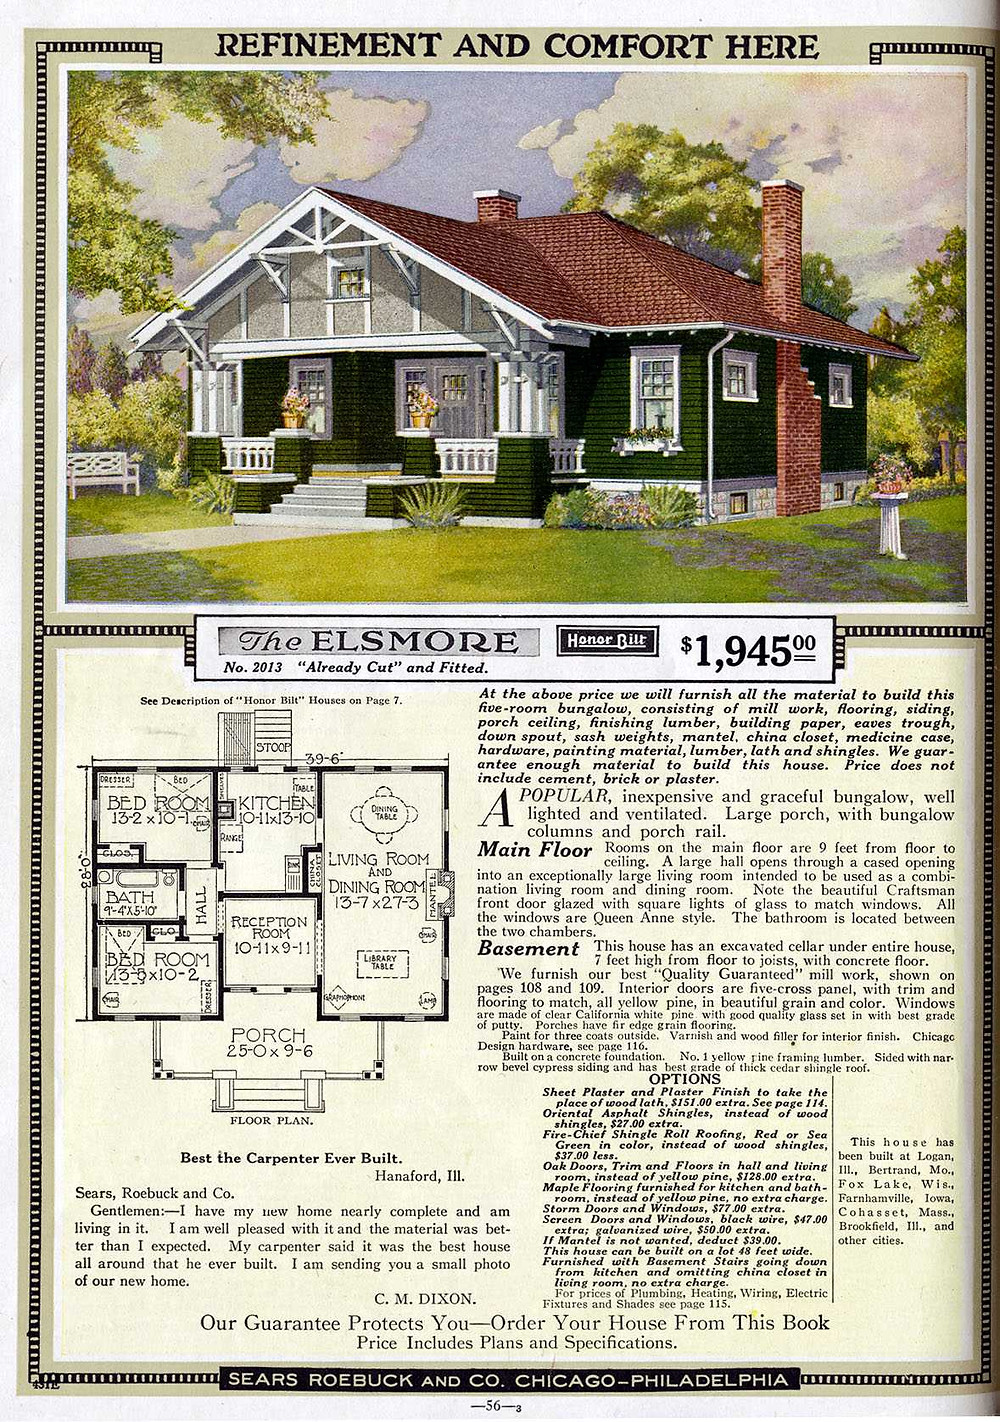 sears roebuck ad for mail-order house for $1,945